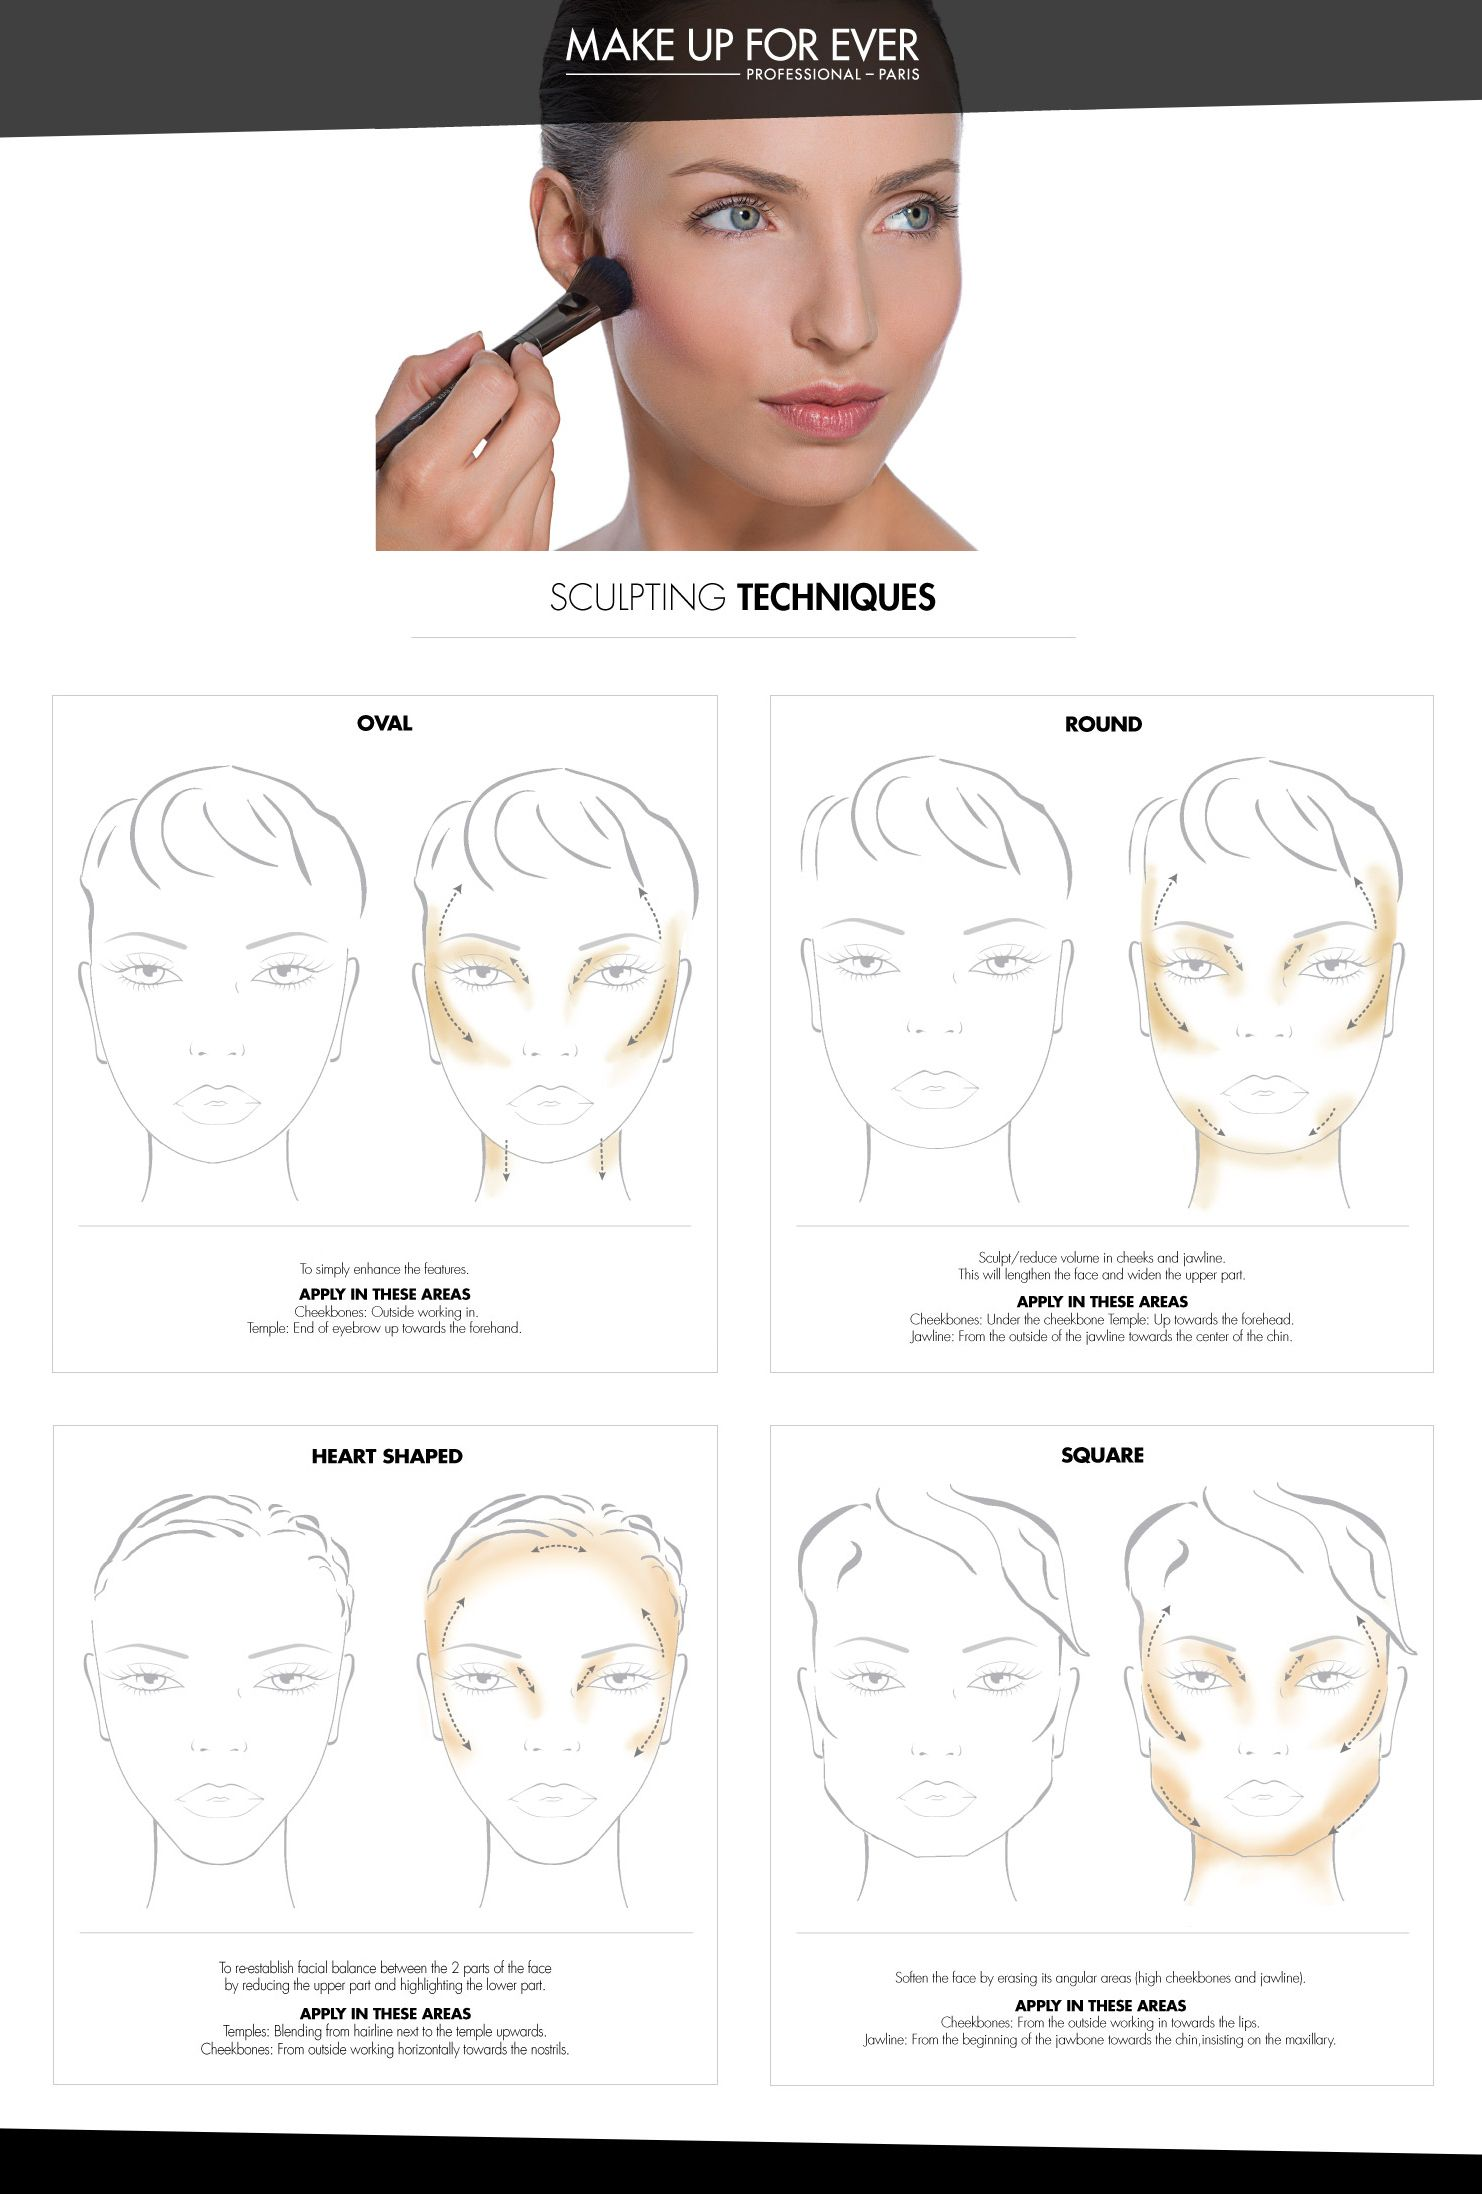 Tips by face shape apply make up for ever sculpting kit 1 on tips by face shape apply make up for ever sculpting kit 1 on oval ccuart Gallery